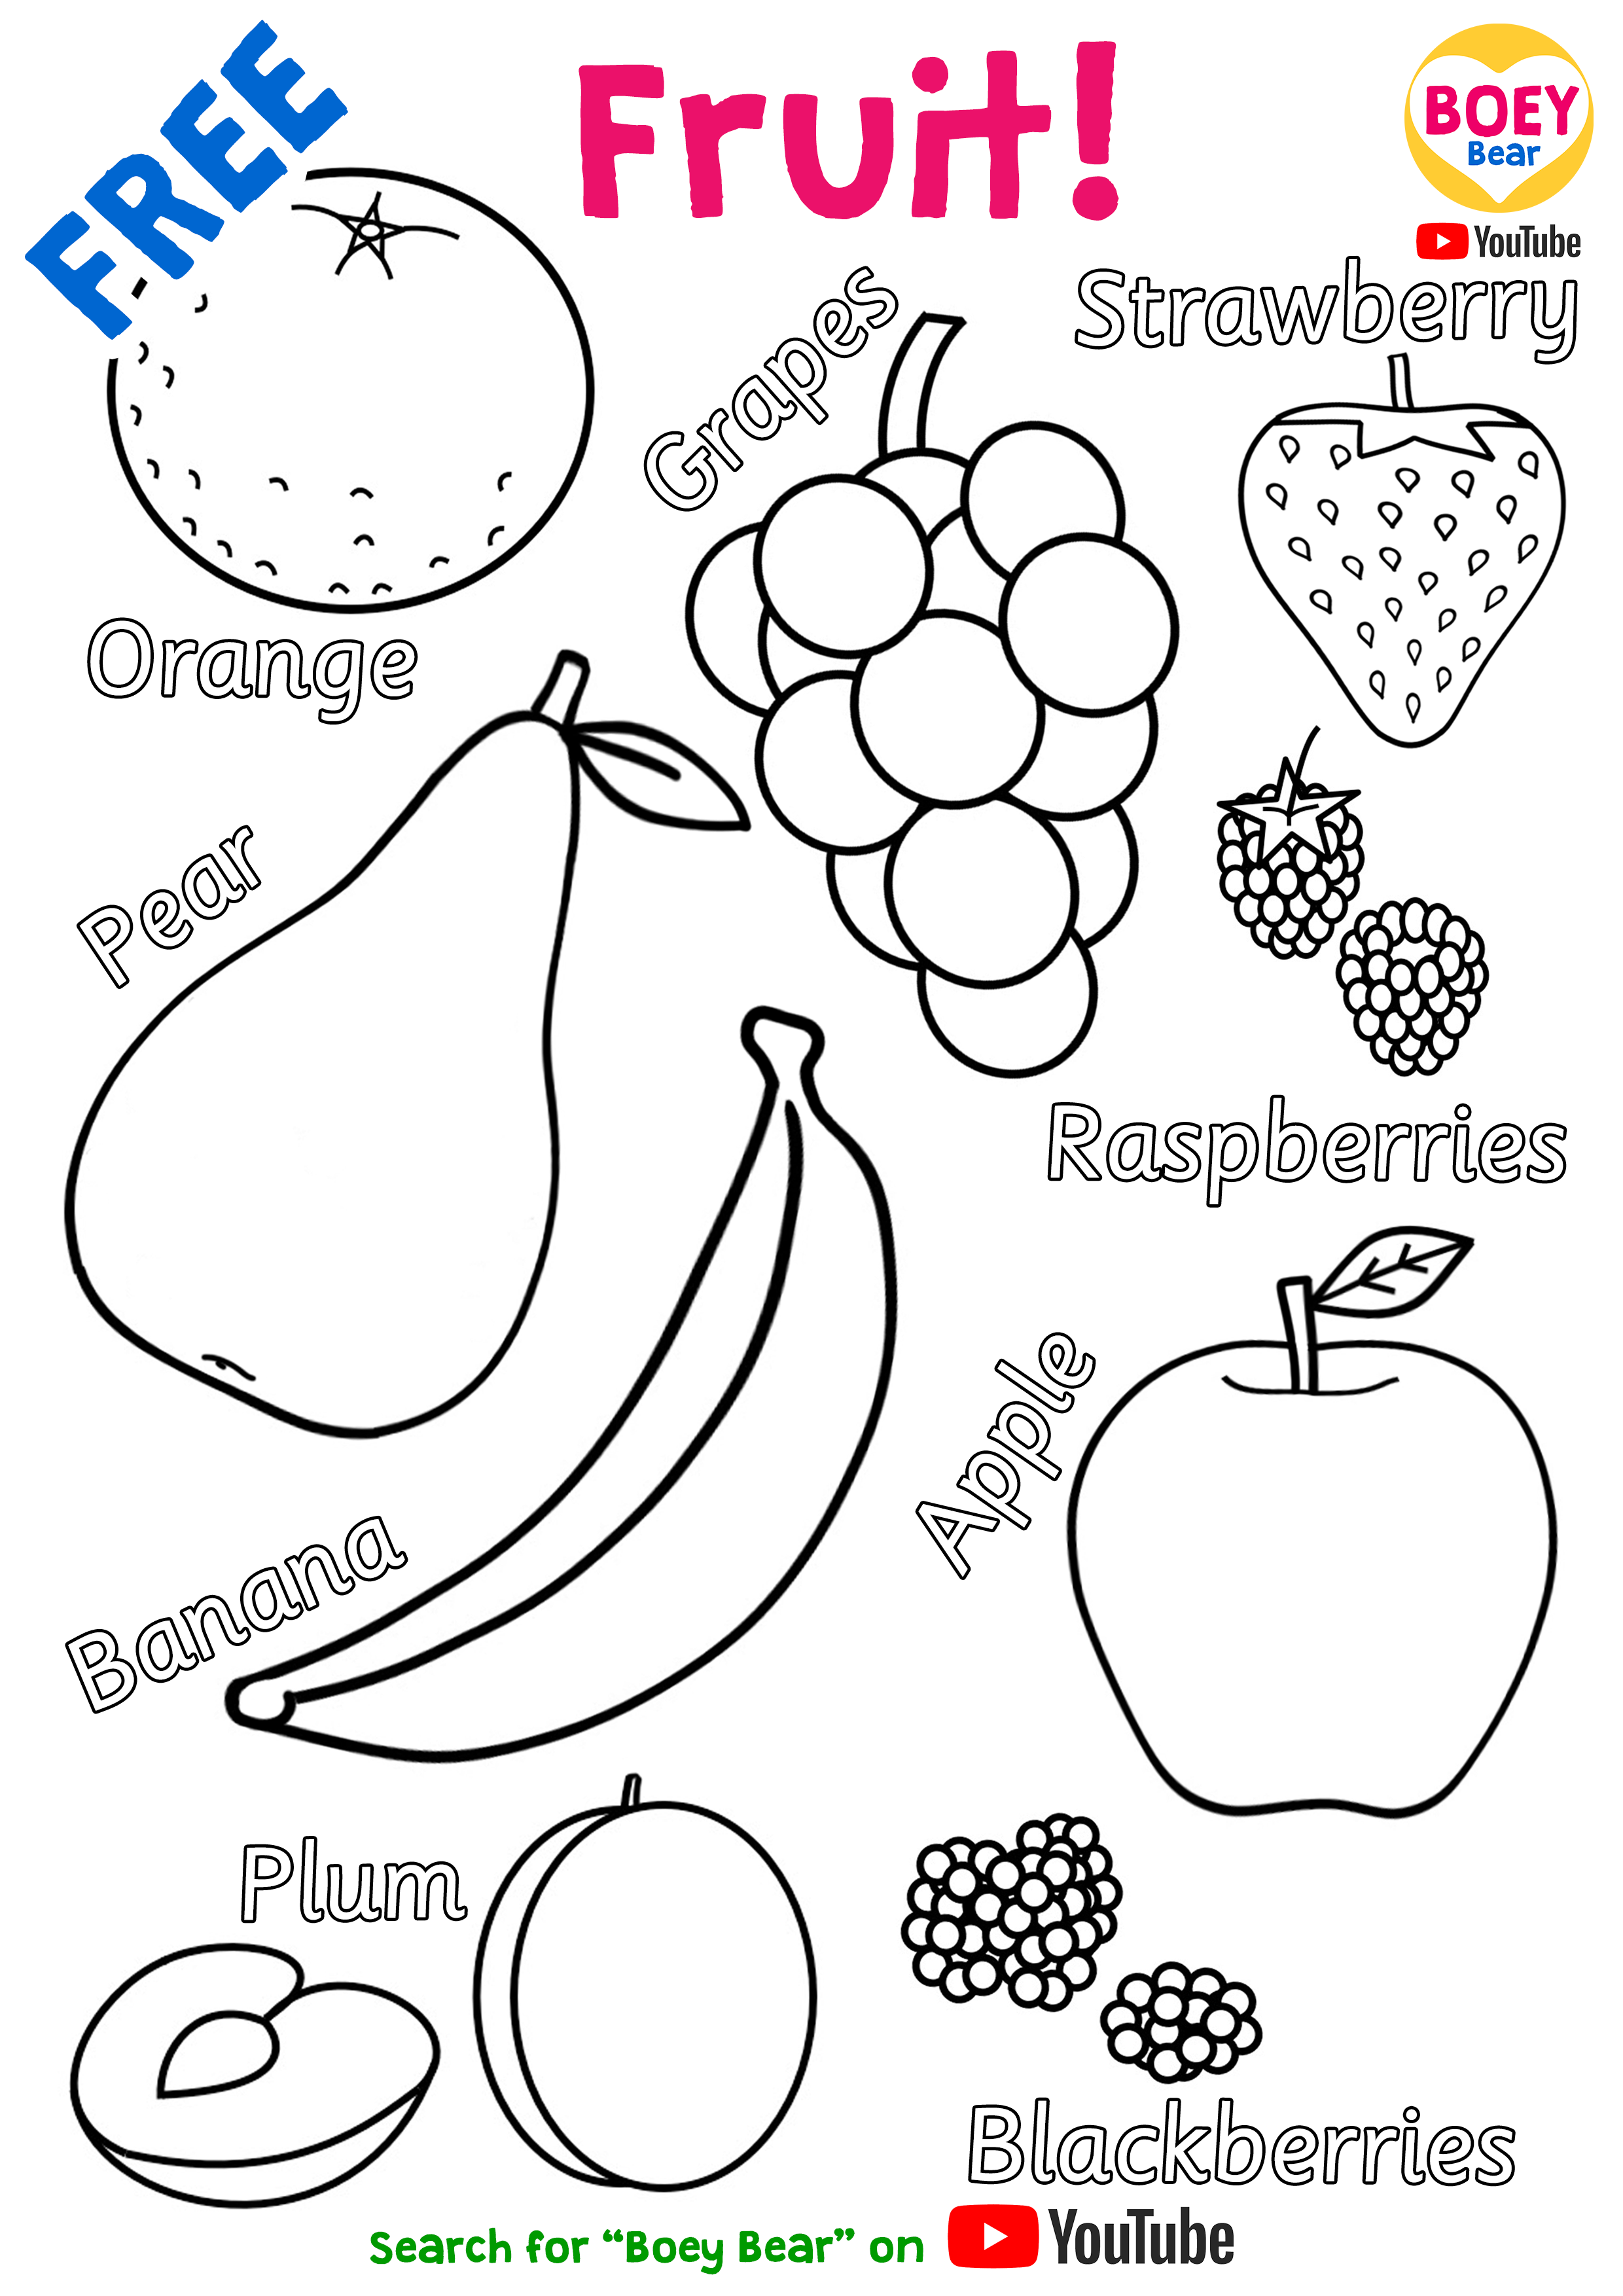 Fruit Vegetables Coloring Pages Free Printable For Kids Boey Bear In 2020 Printables Free Kids Free Preschool Printables Vegetable Coloring Pages